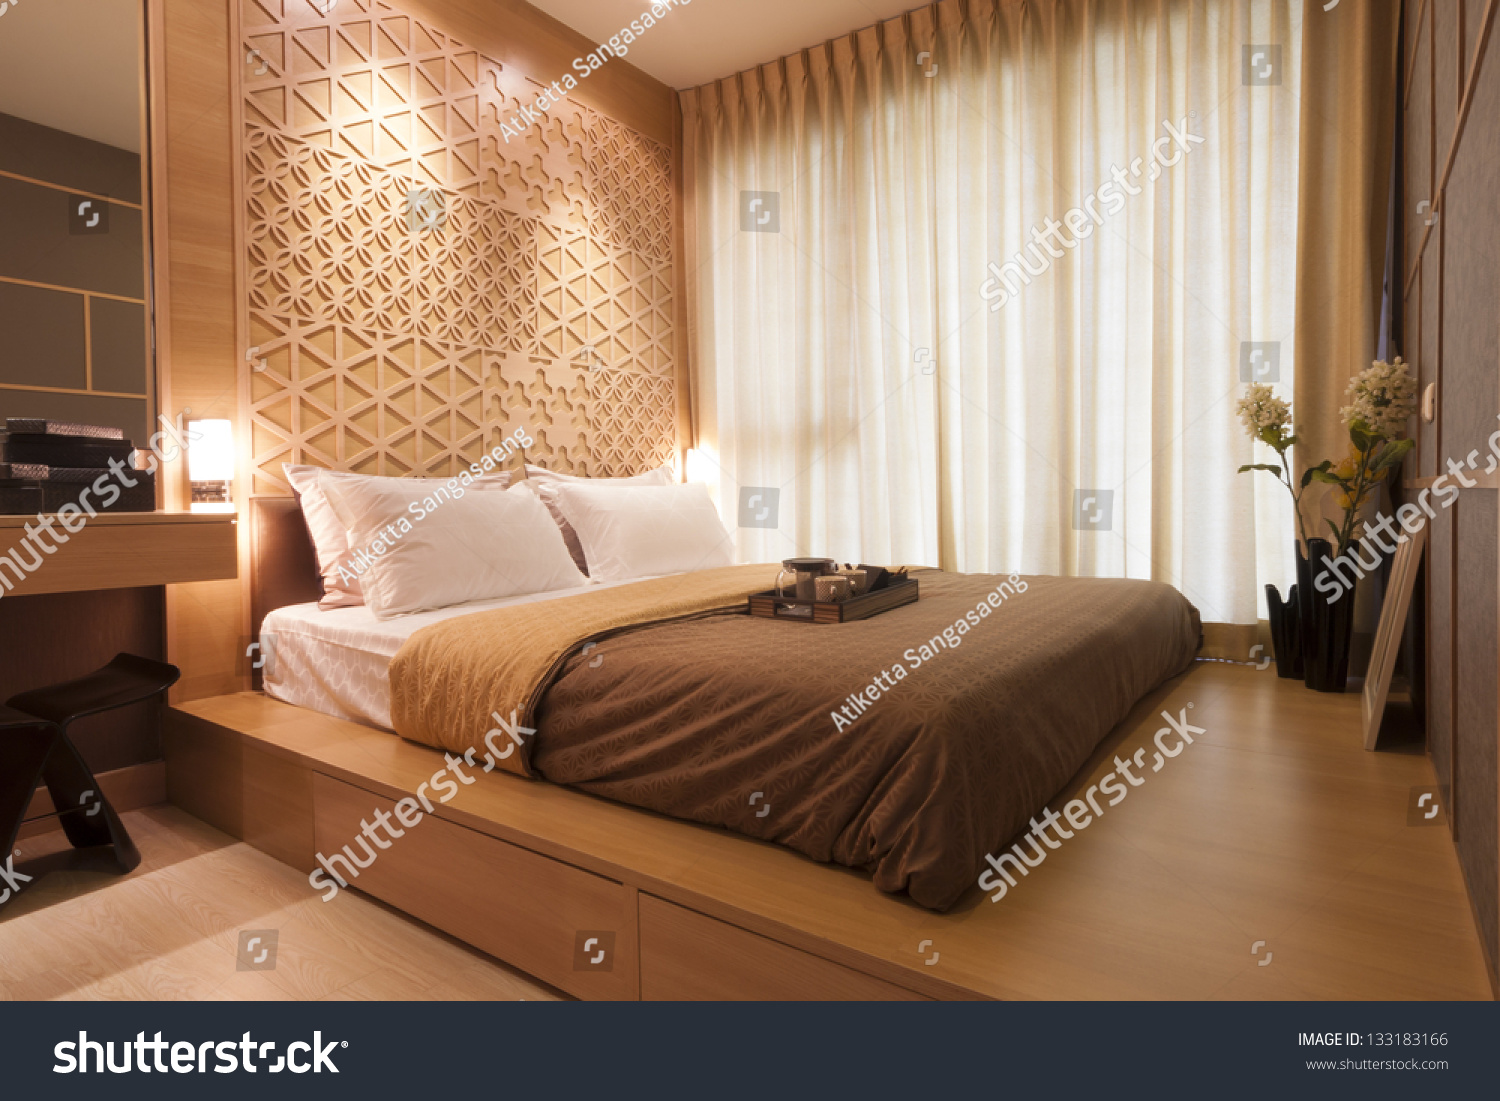 Japanese Bedrooms Style Japanese Style Bedroom Tea Set Stock Photo 133183166